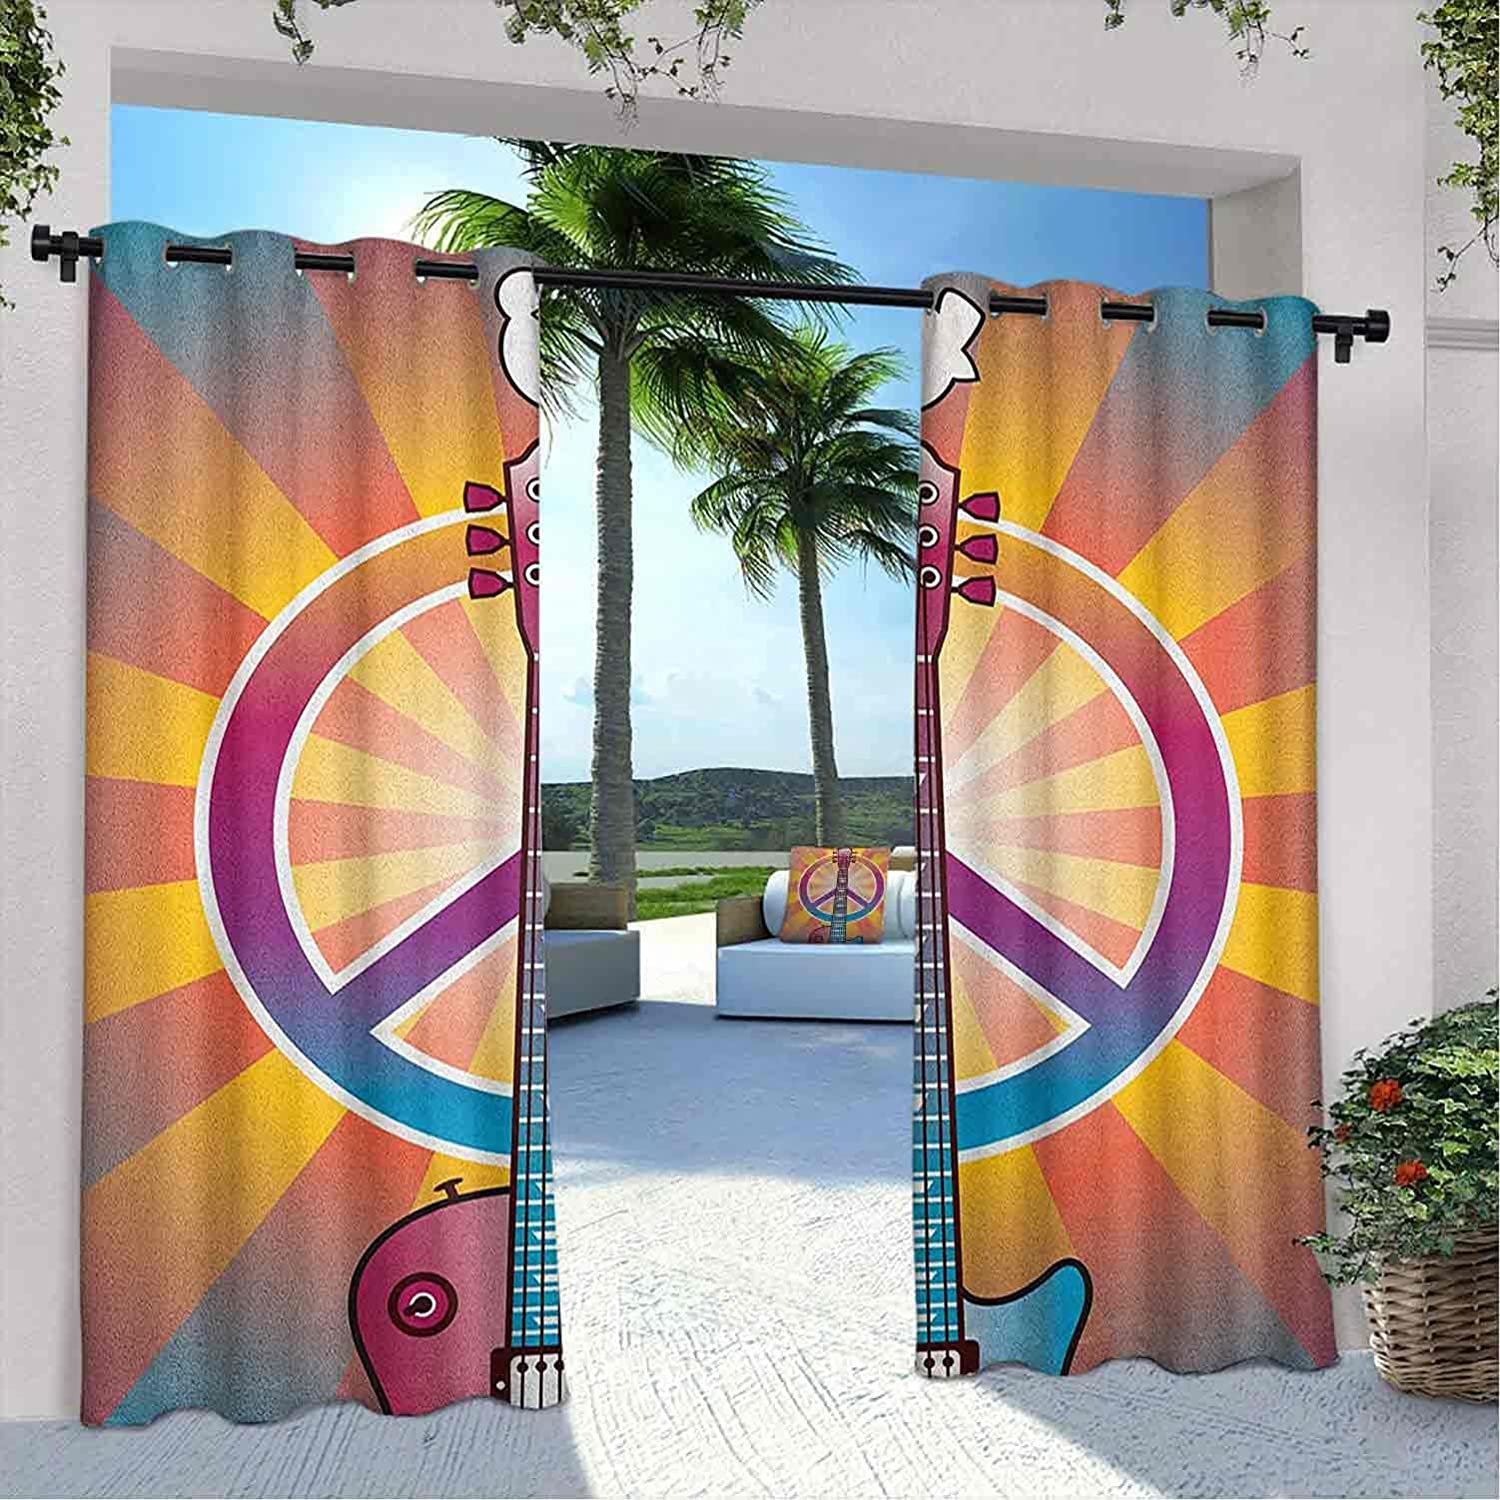 Outdoor Pavilion Retro Curtain Colorful and Peace Safety and trust Ranking TOP20 Symbol Guitar